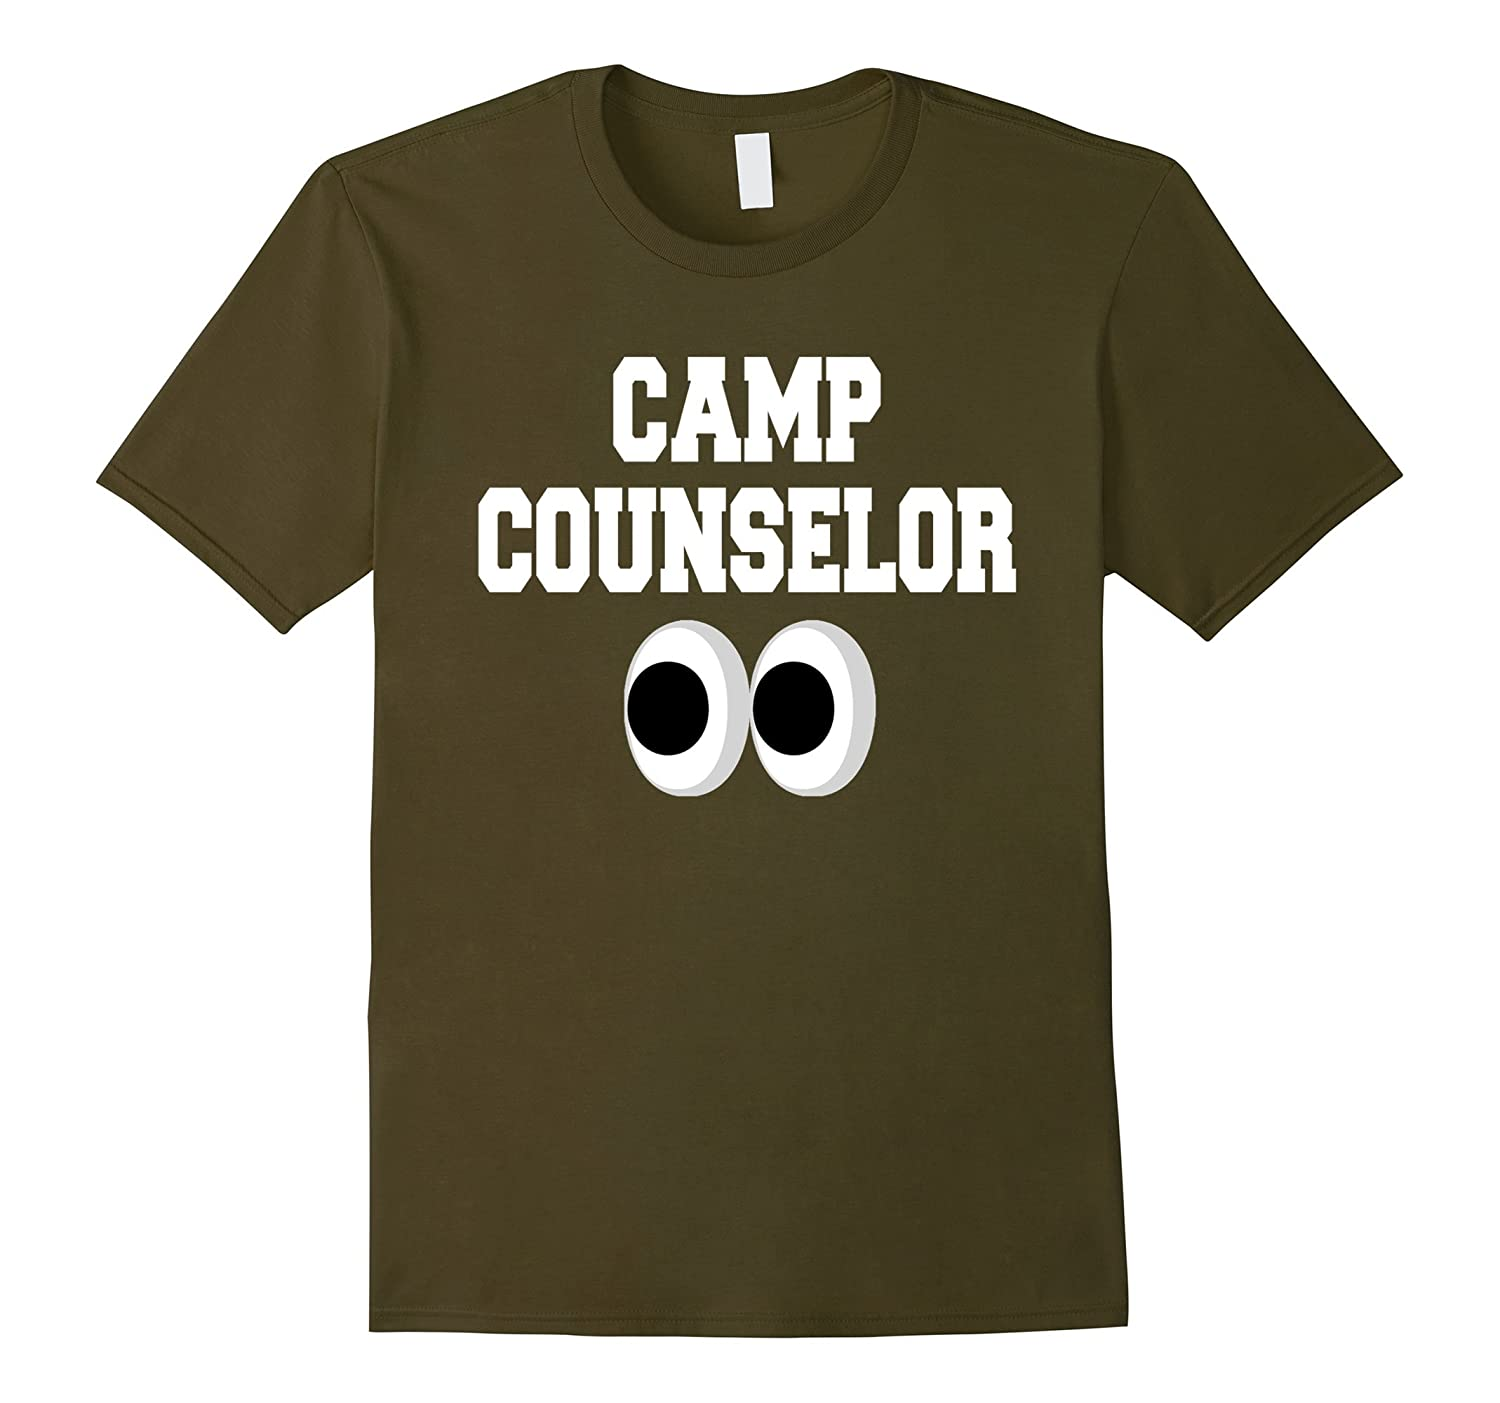 b498ab290f61 Funny Camp Counselor T Shirt for Sleepover or Day Camp Gift-CD ...